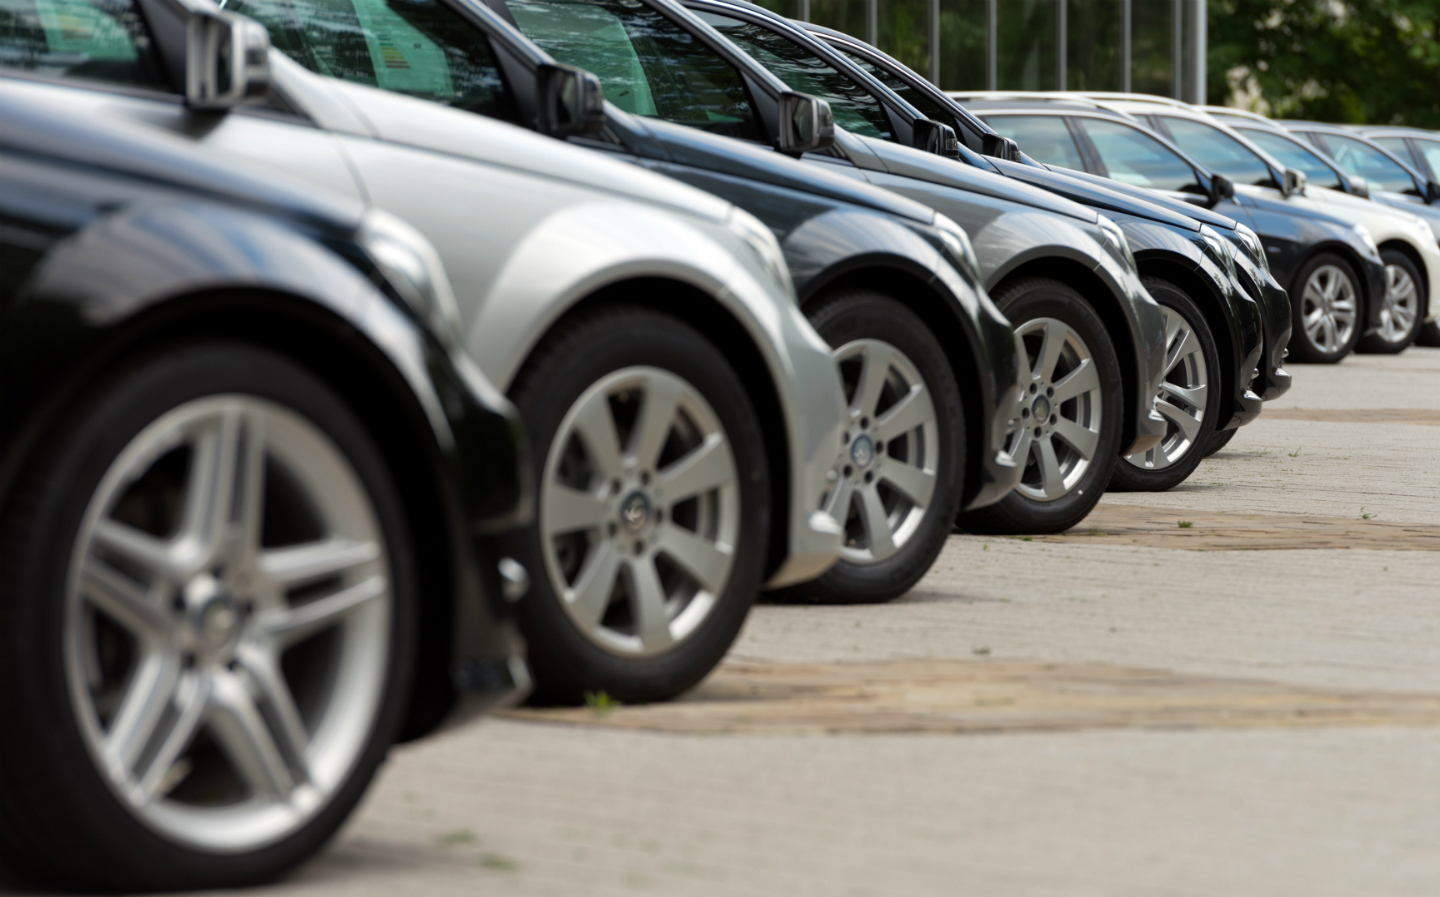 Excellent car deals and satisfactory solution gains